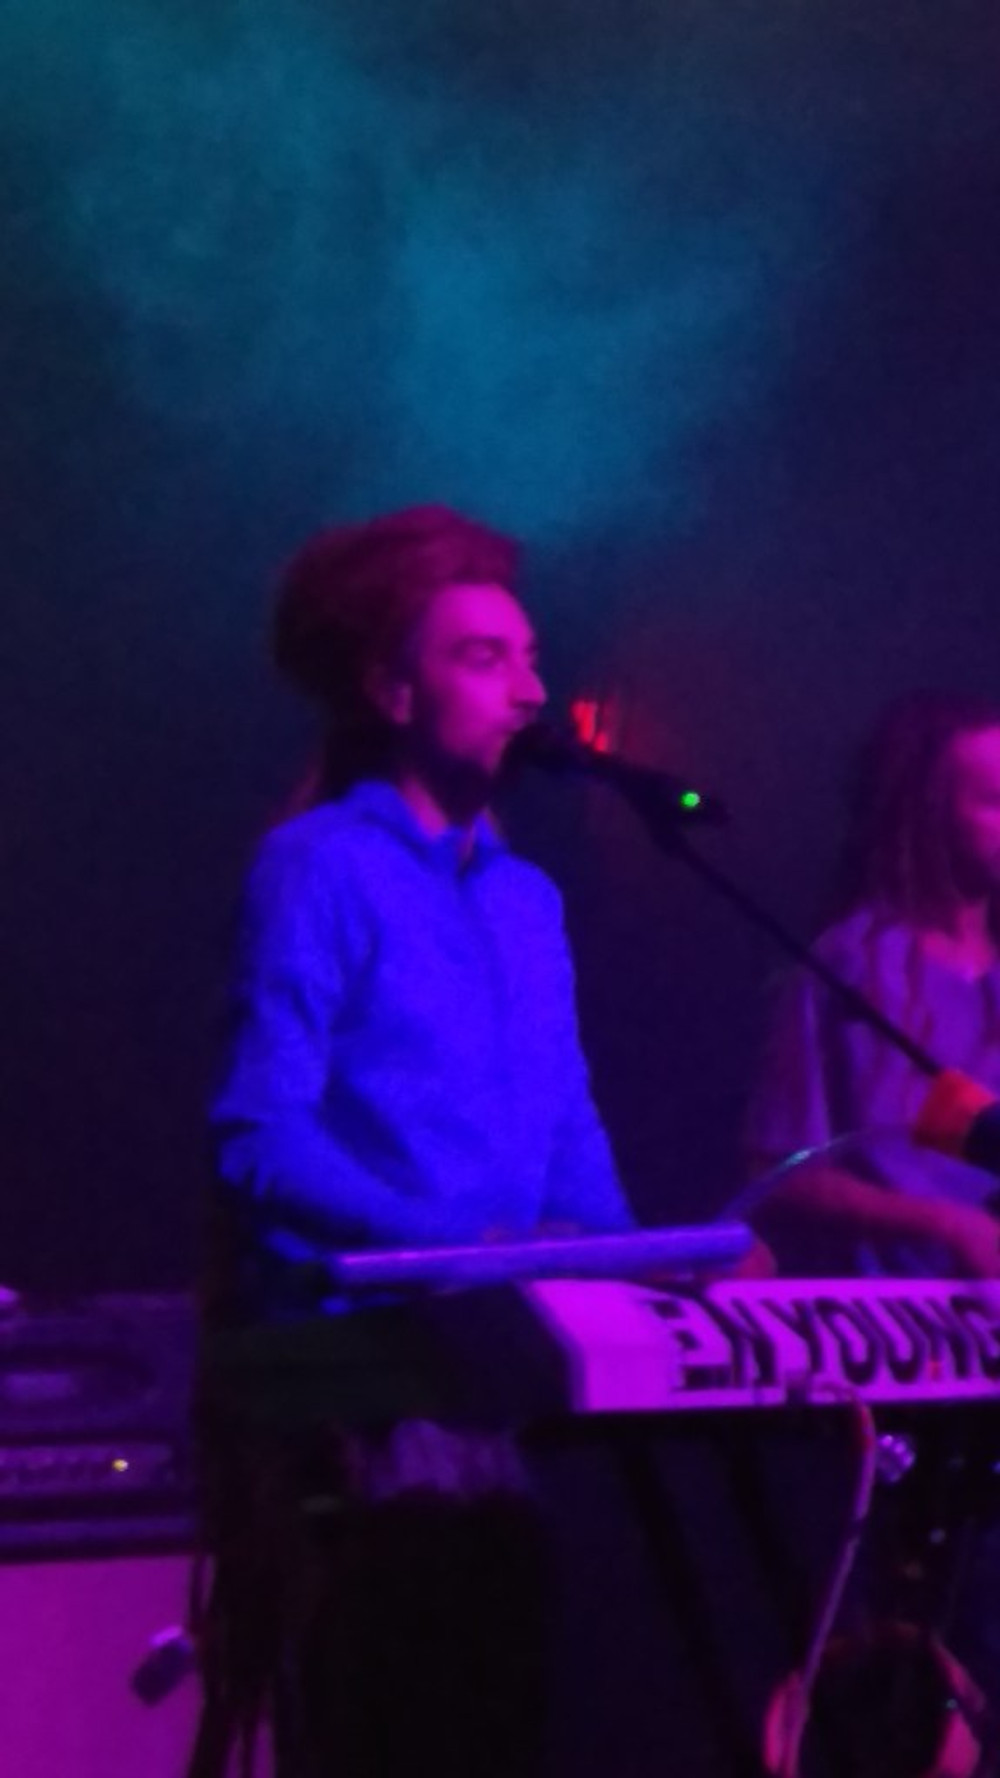 A picture of E.N Young at his keyboard during the show.